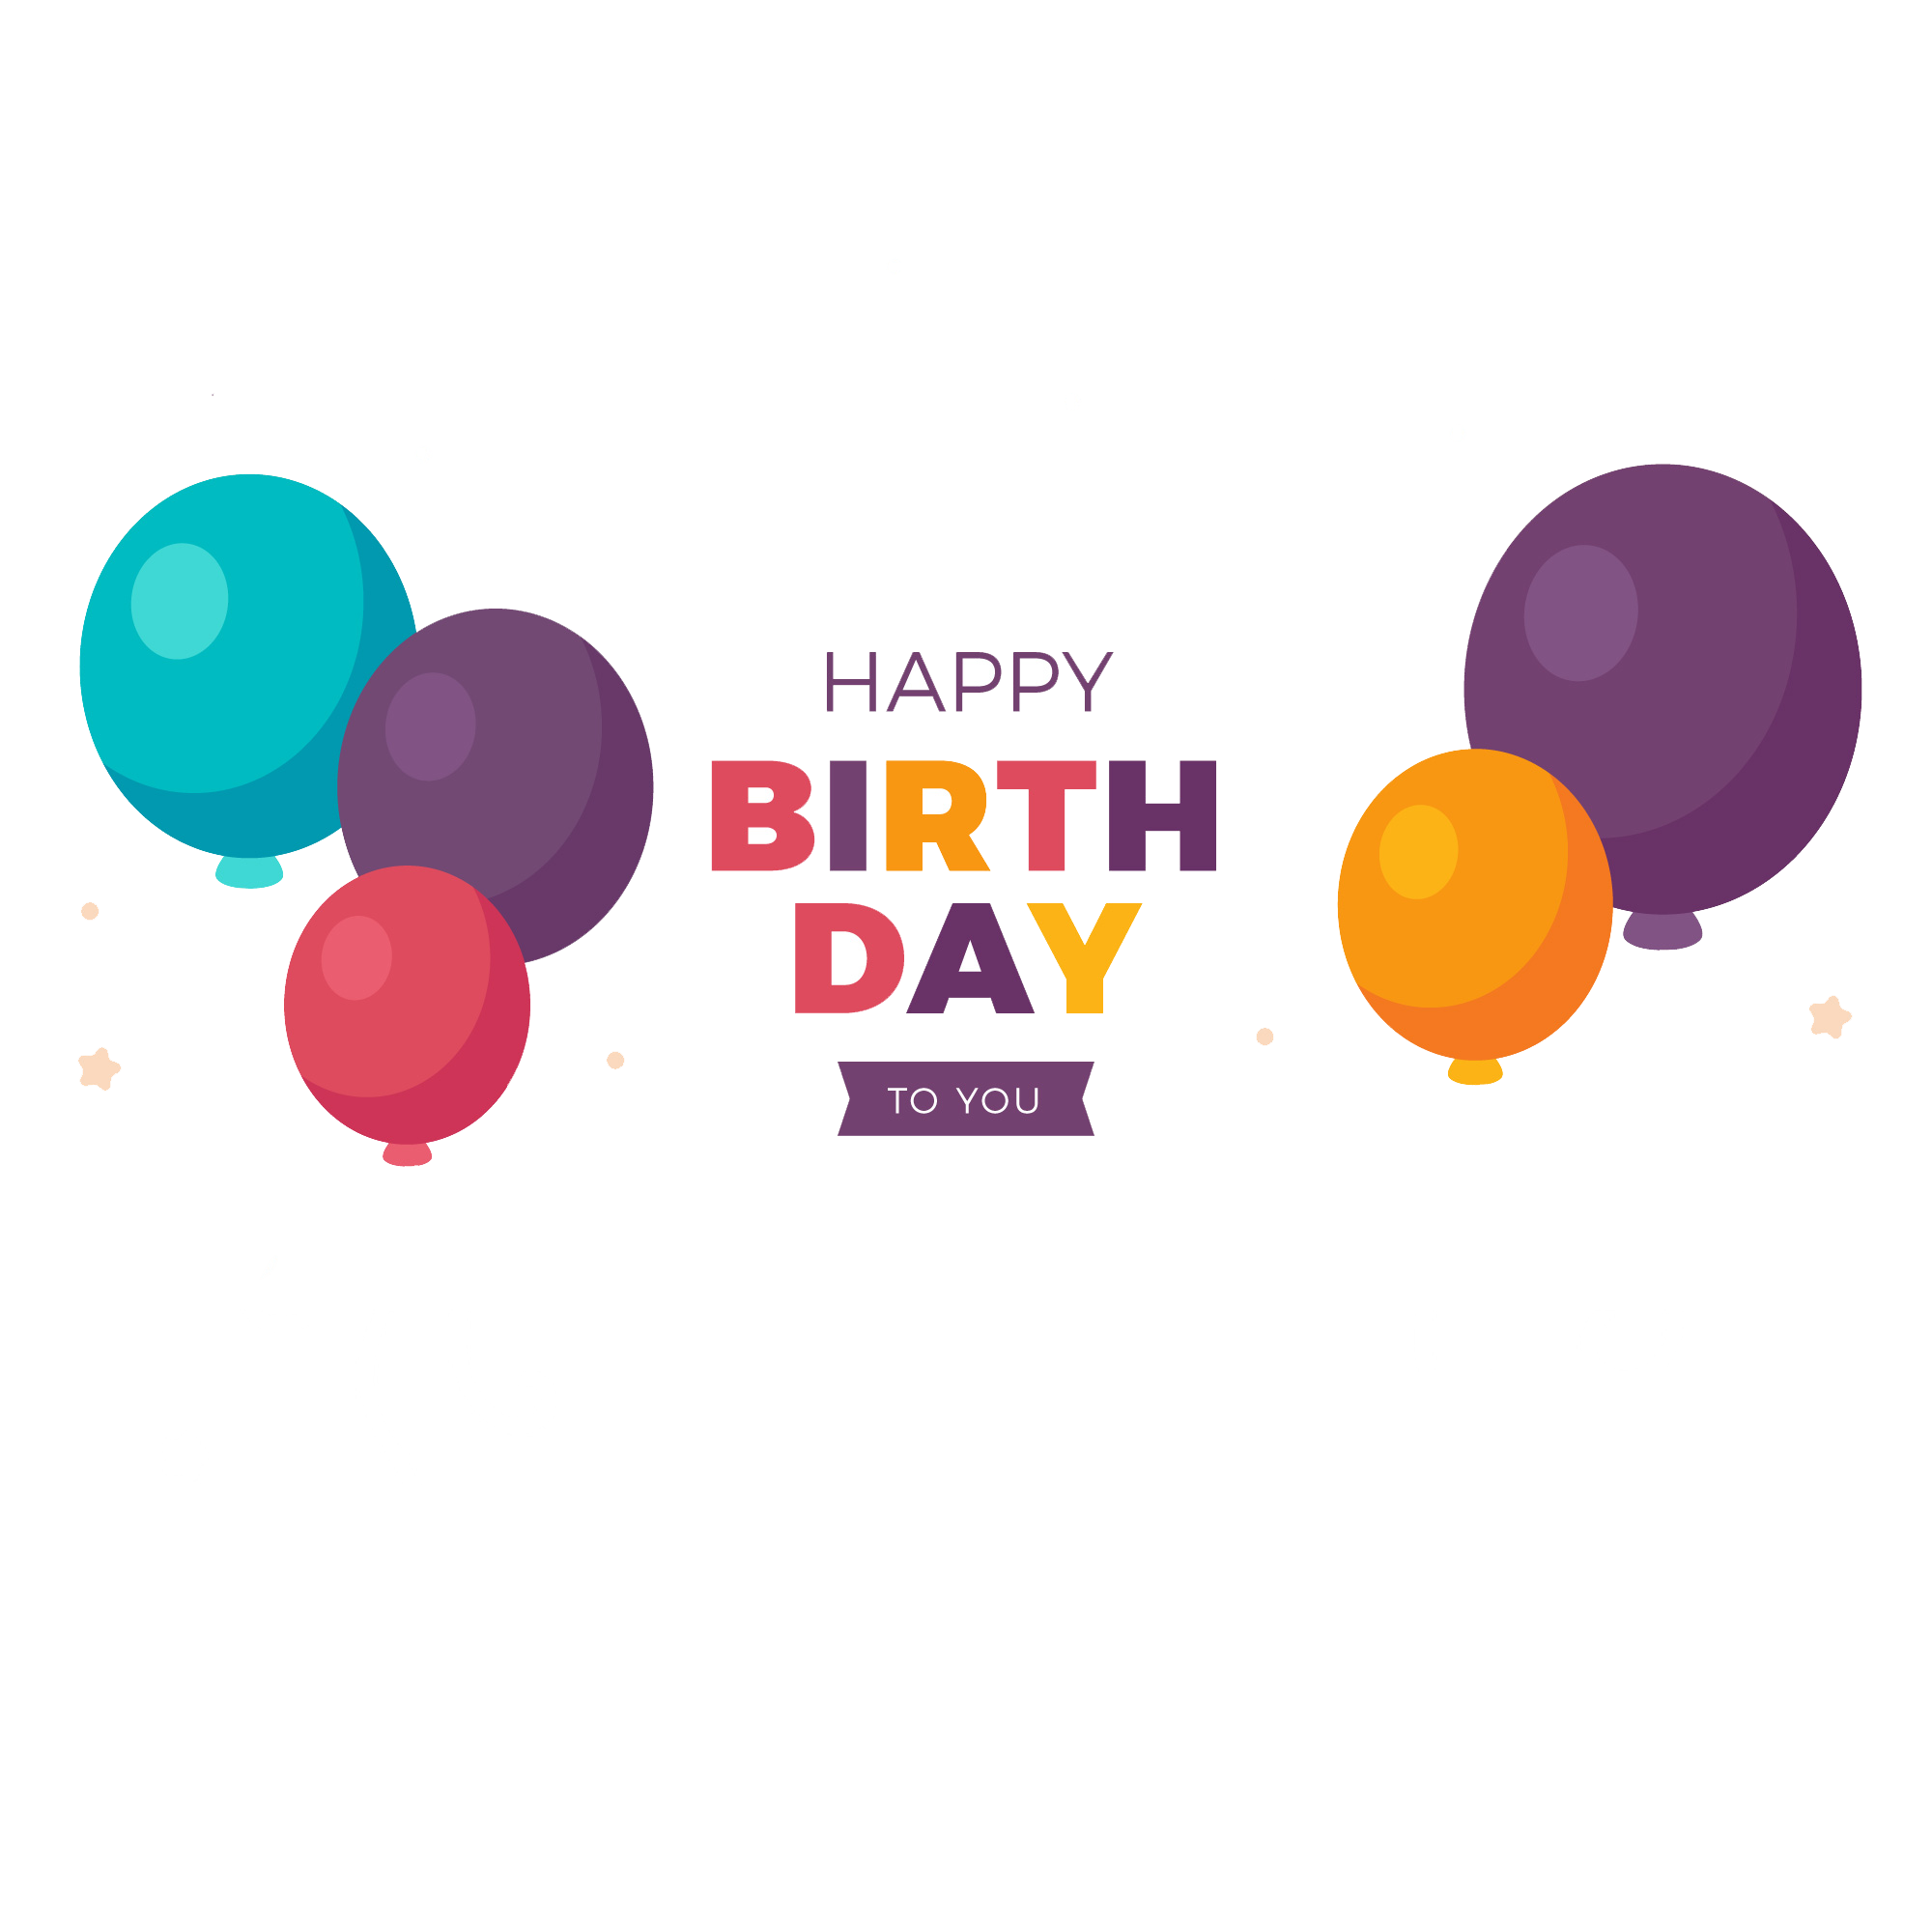 Birthday png text. Happy file peoplepng com